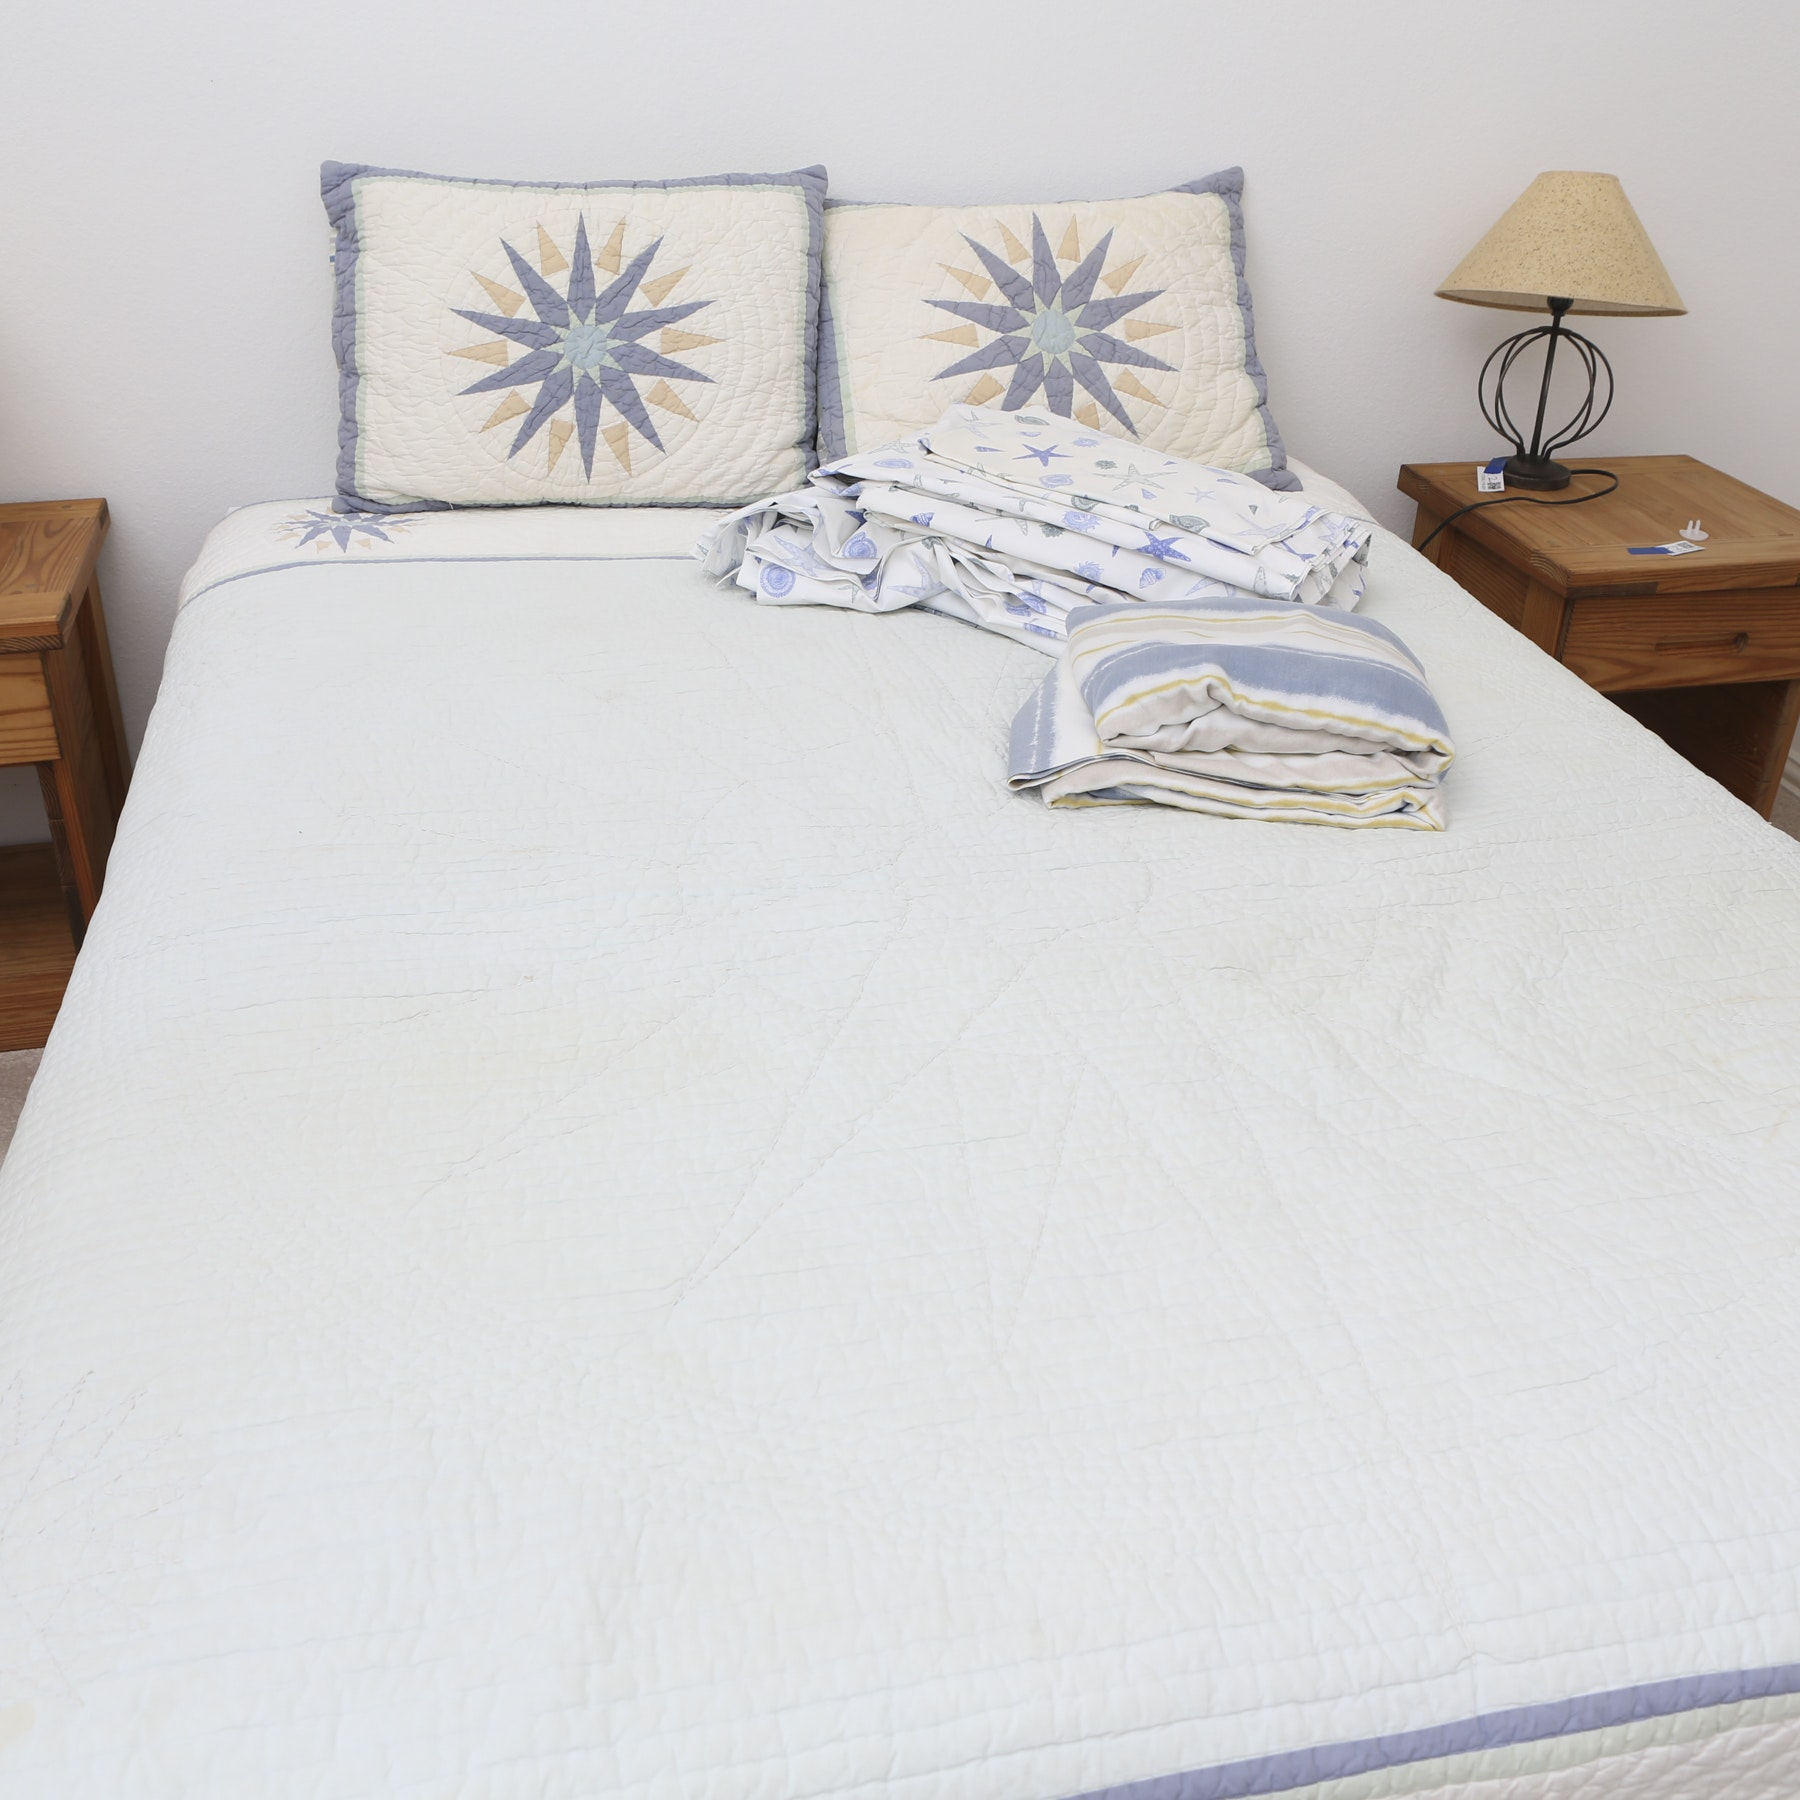 Nautical Quilt, Pillow Covers and Sheet Sets